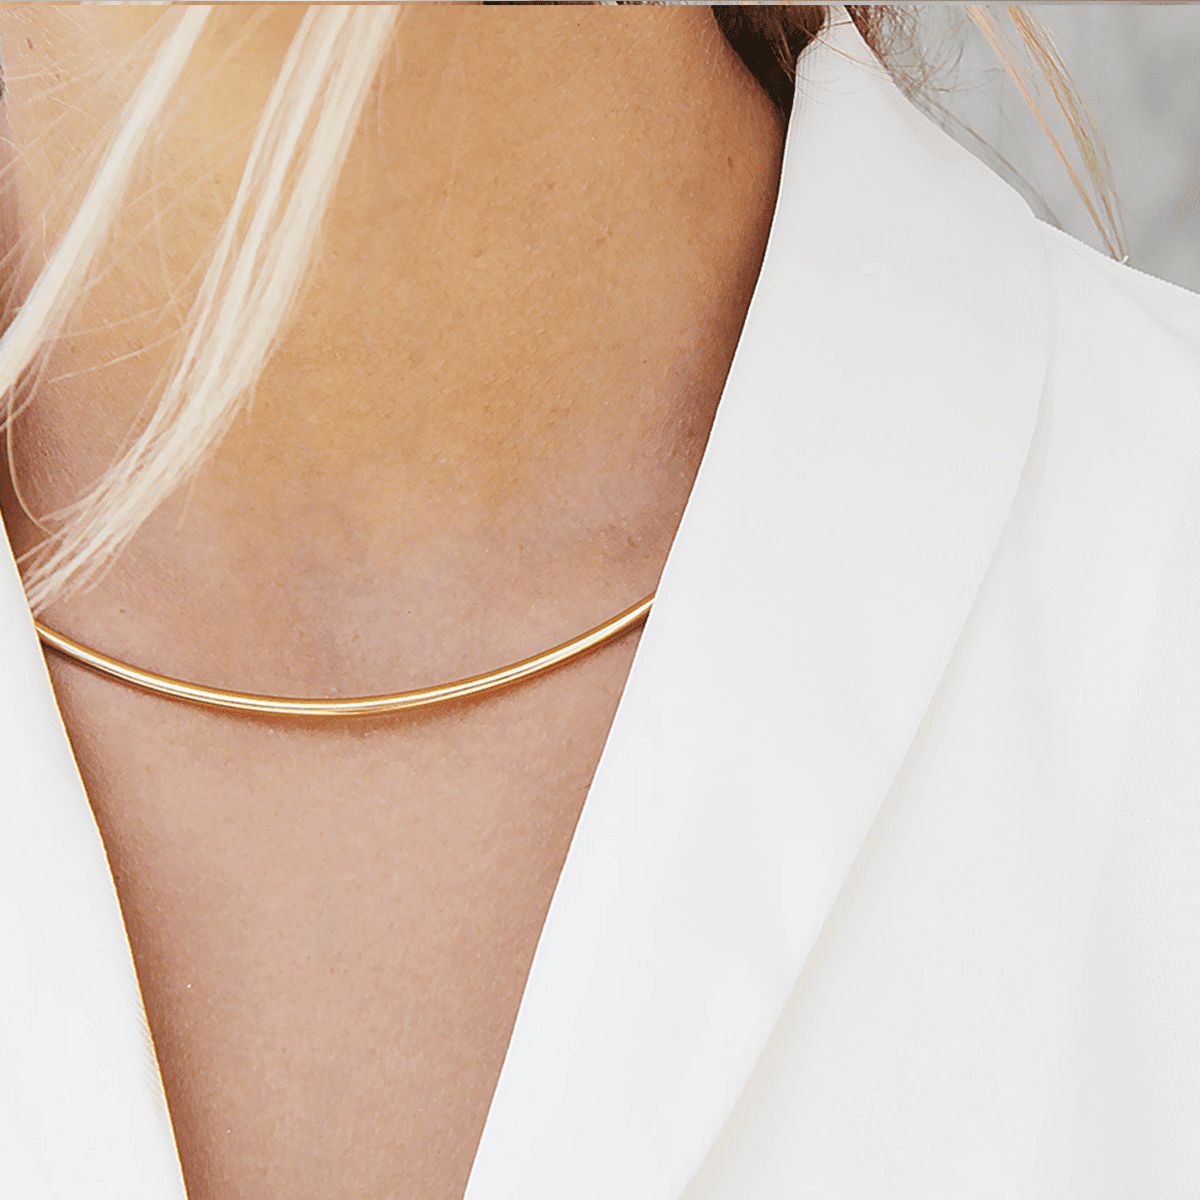 Dual-Use 18k Gold-Plated Collar Necklace